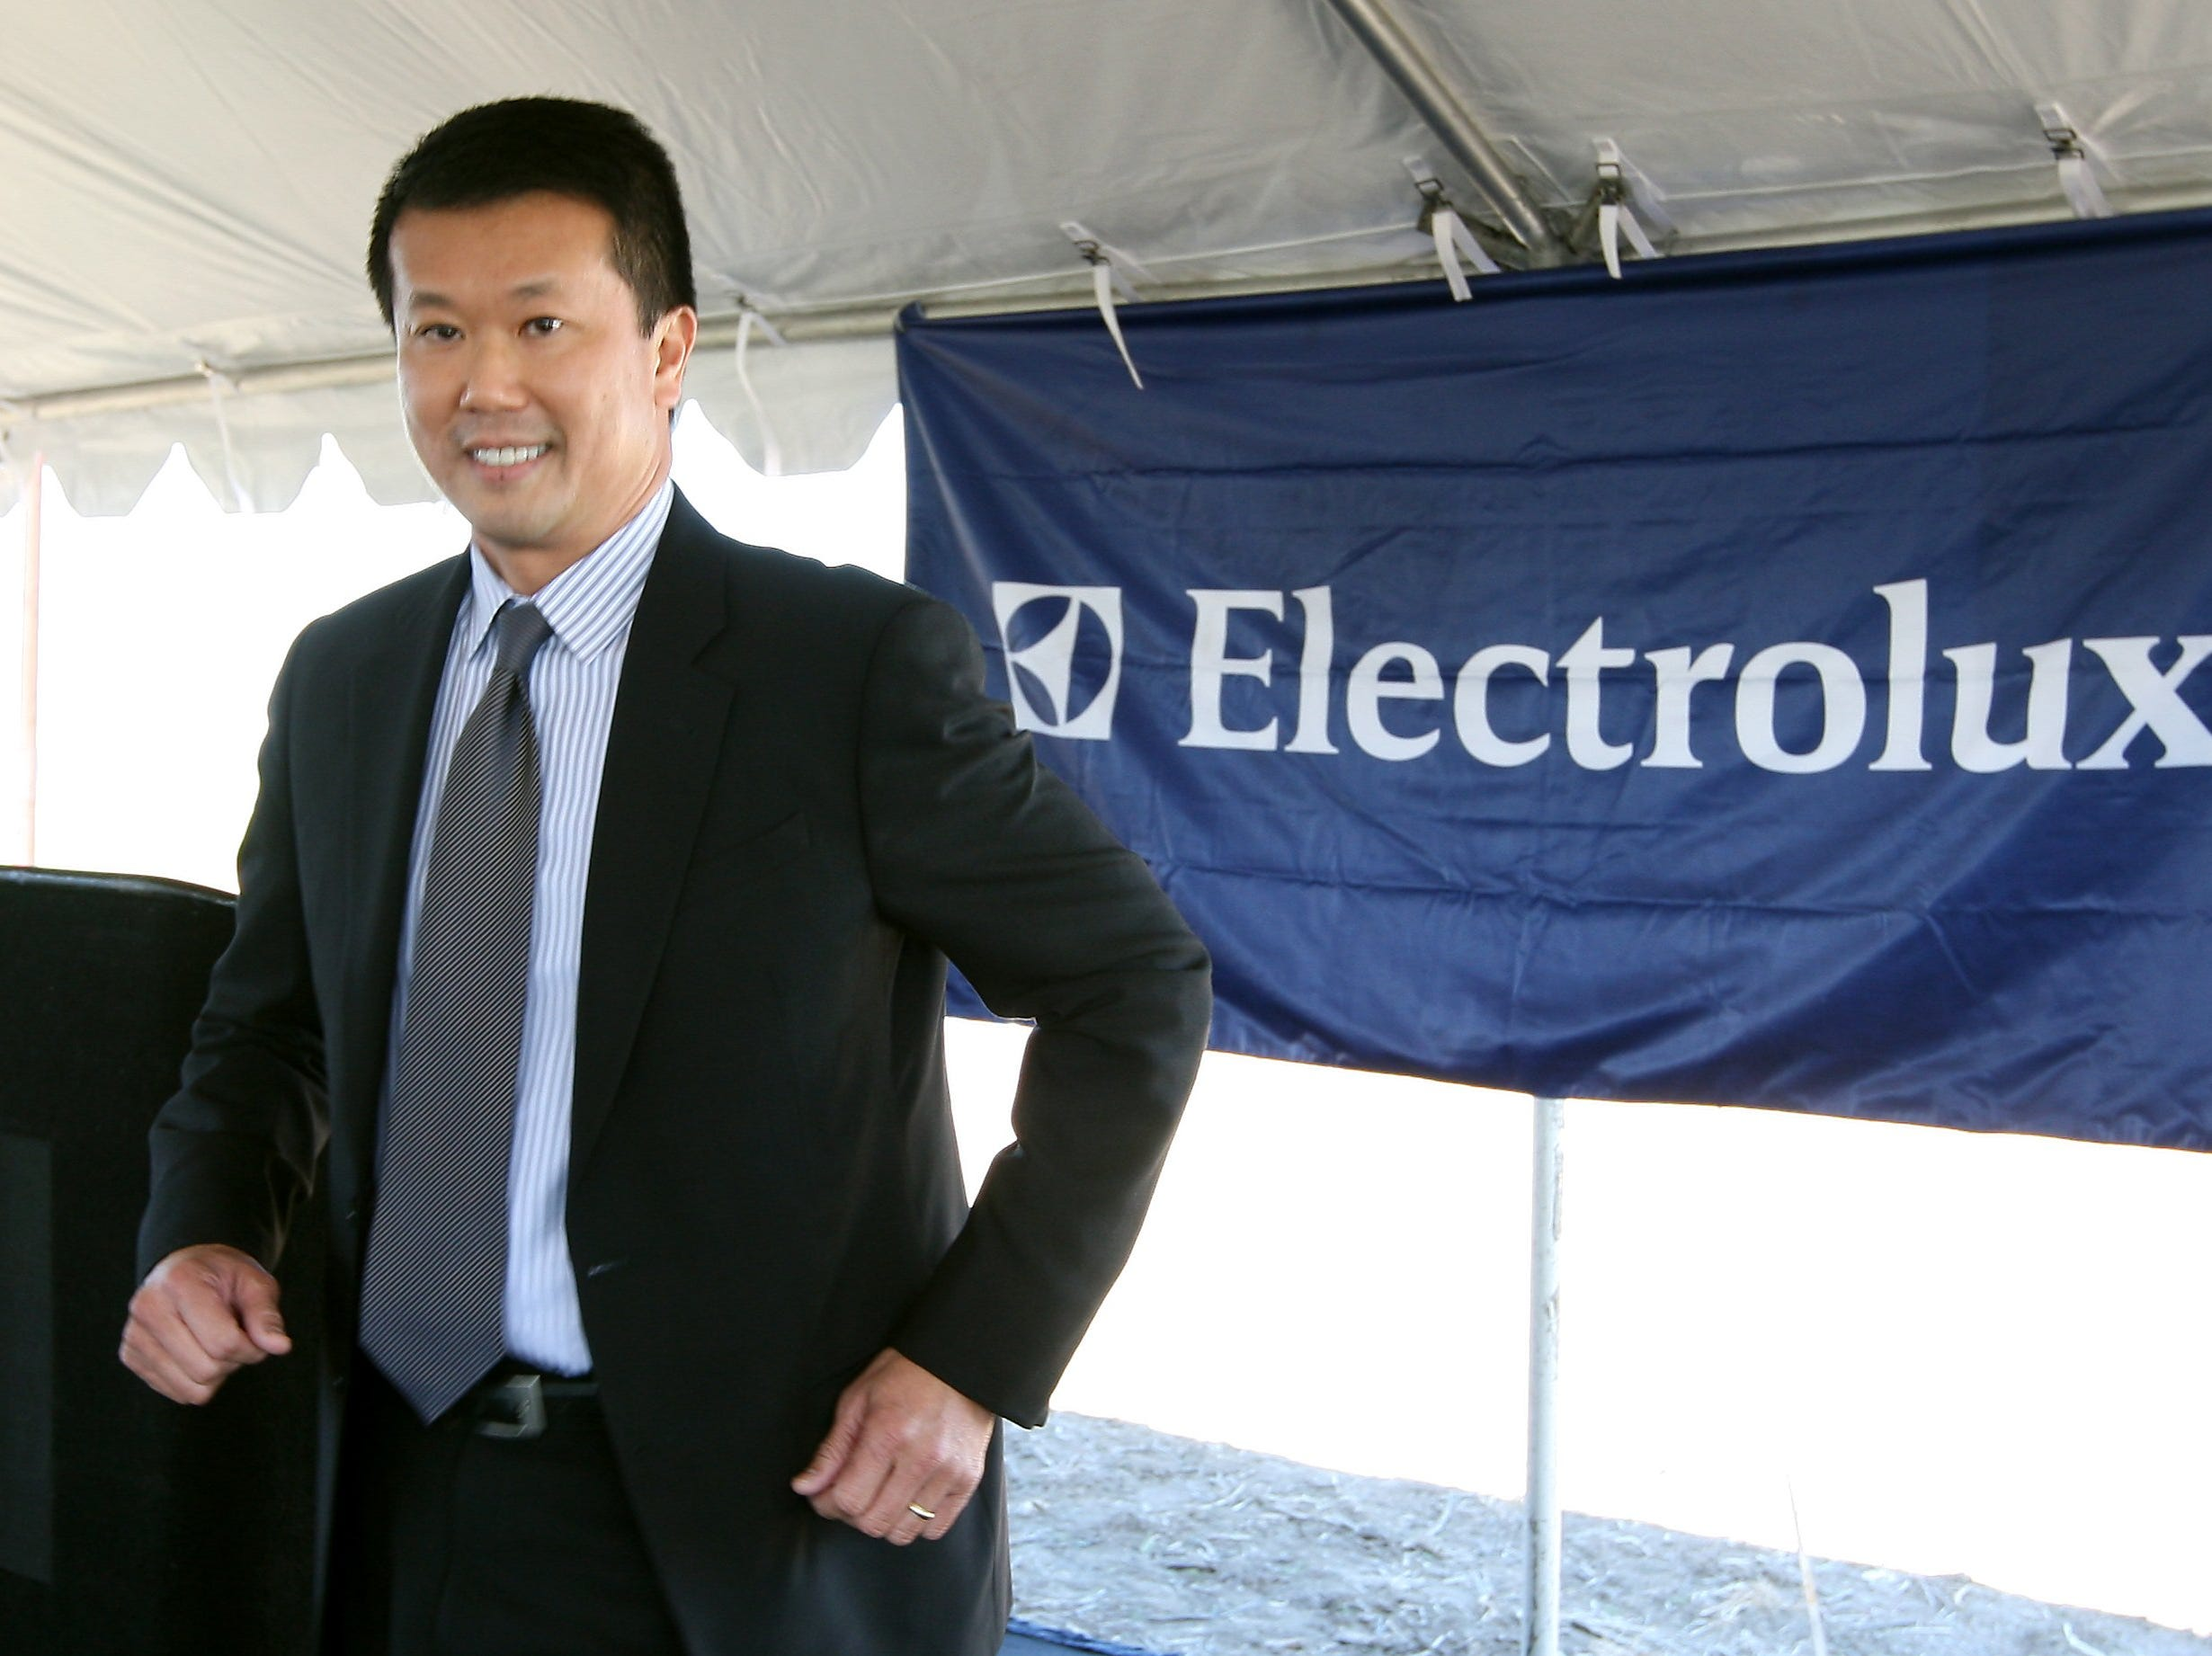 October 5, 2011 - Ground is broken on the new Electrolux facility in the Frank Pidgeon Industrial Park. Electrolux North America president and CEO Jack Truong returns to his speech after welcoming remarks.  (Dave Darnell / The Commercial Appeal)